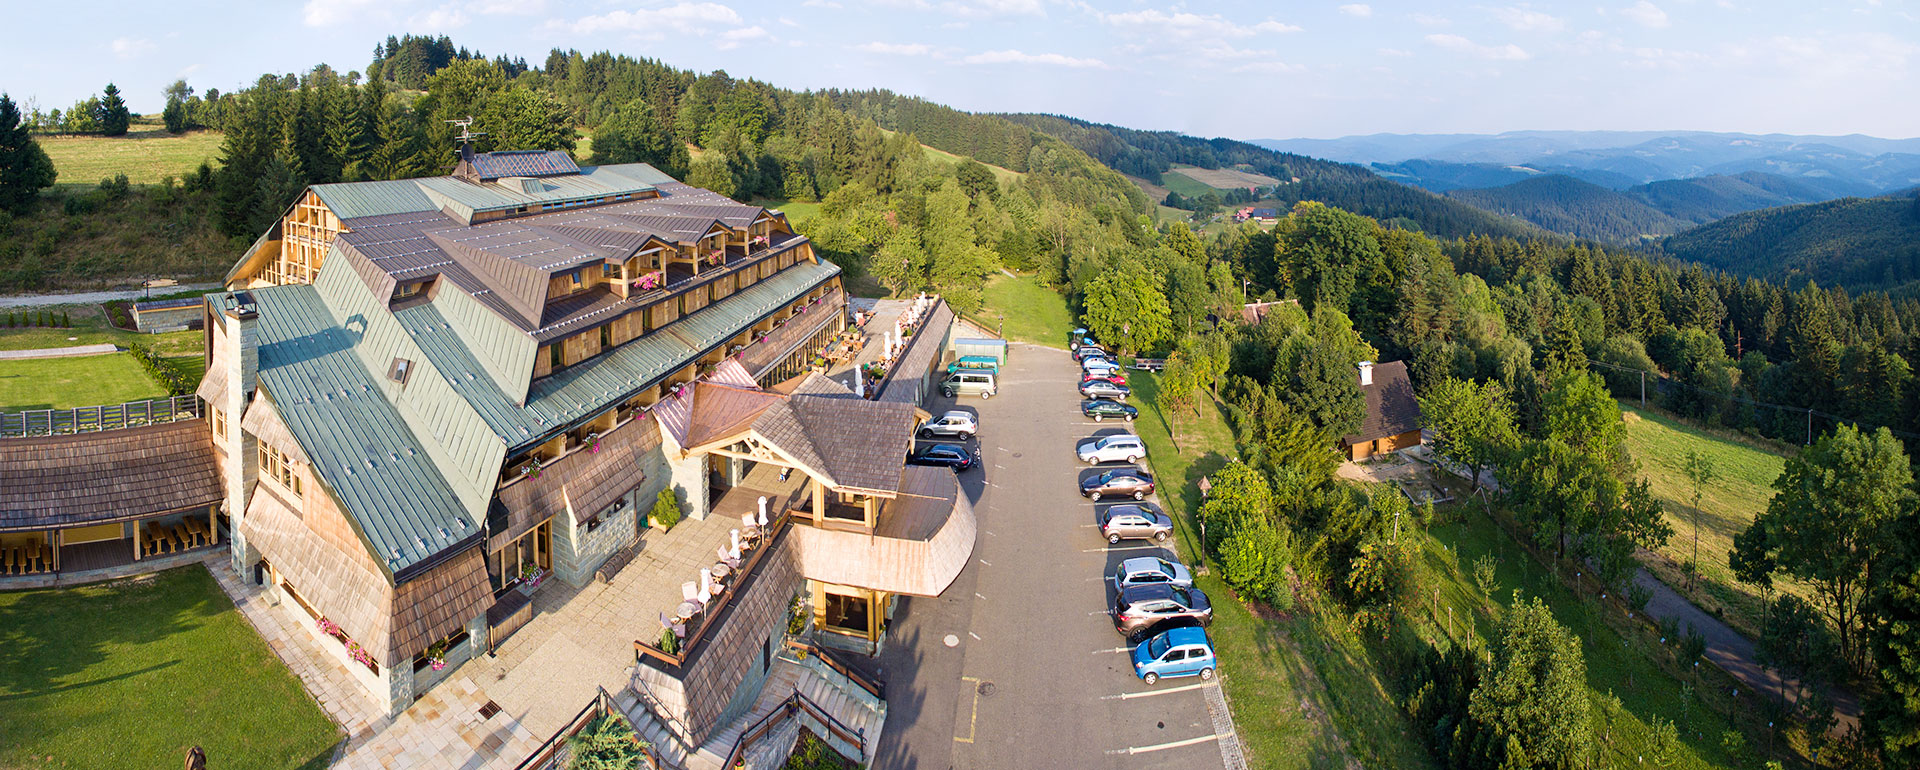 Stylish boutique hotel - Beskydy mountains hotel